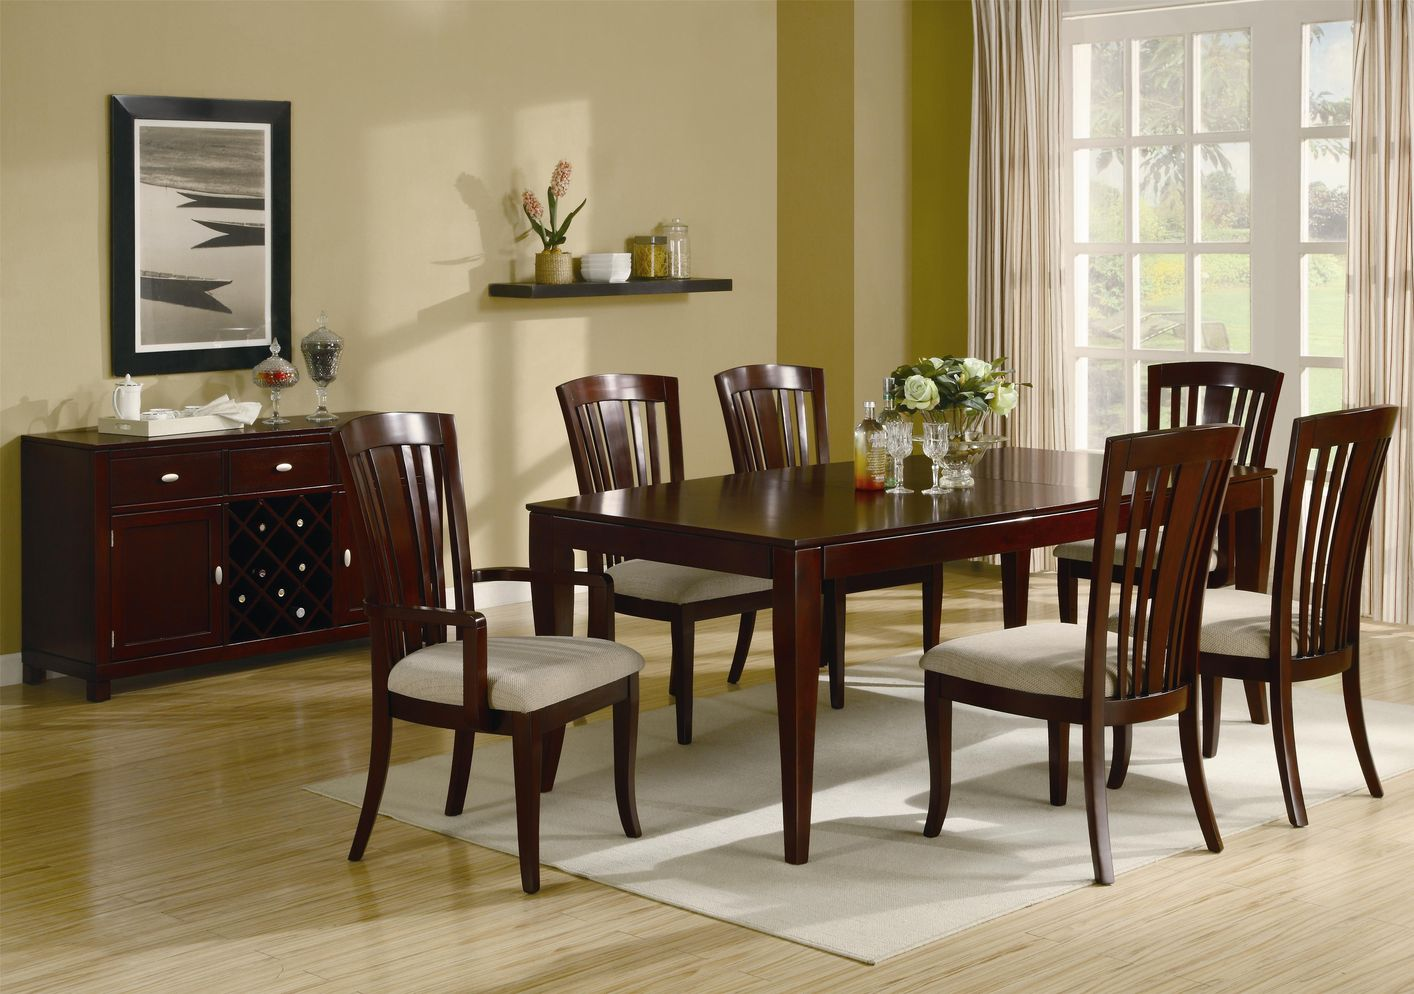 dining room with buffet table elegant and ornate wood dining set